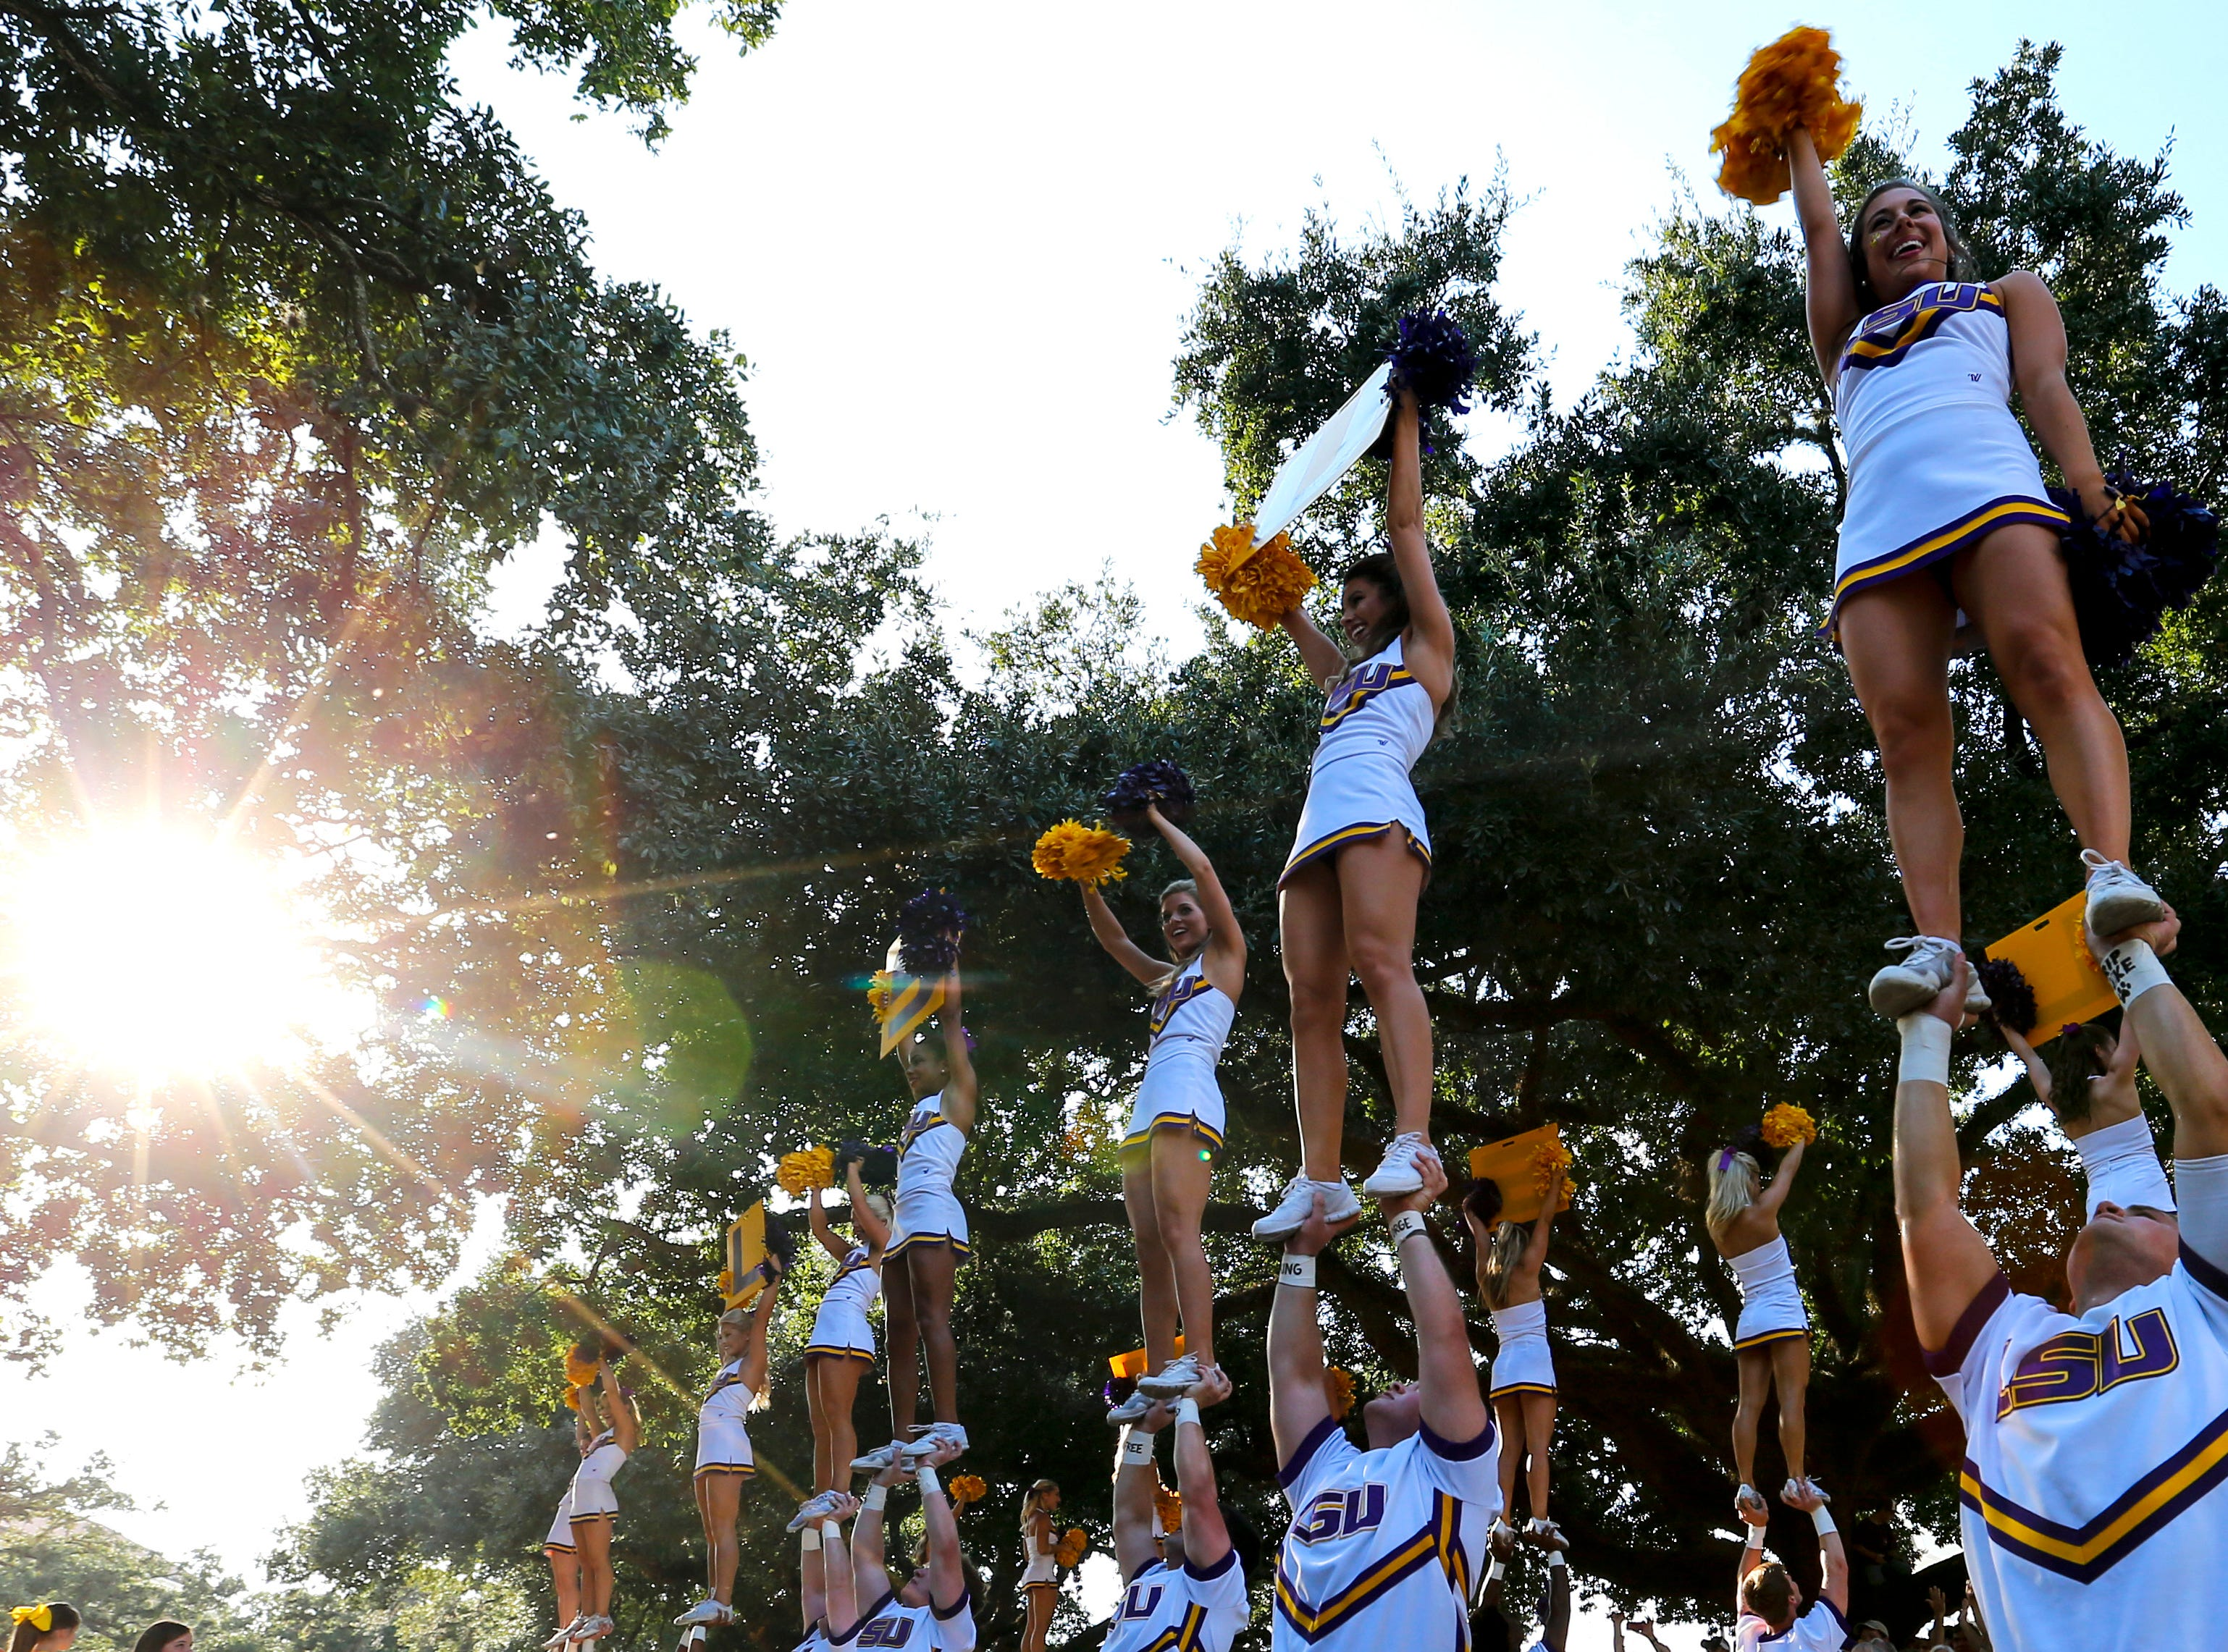 LSU  cheerleaders lead the fans in a cheer before an NCAA college football game, Saturday, Oct. 15, 2016, in Baton Rouge, La. (AP Photo/Butch Dill)